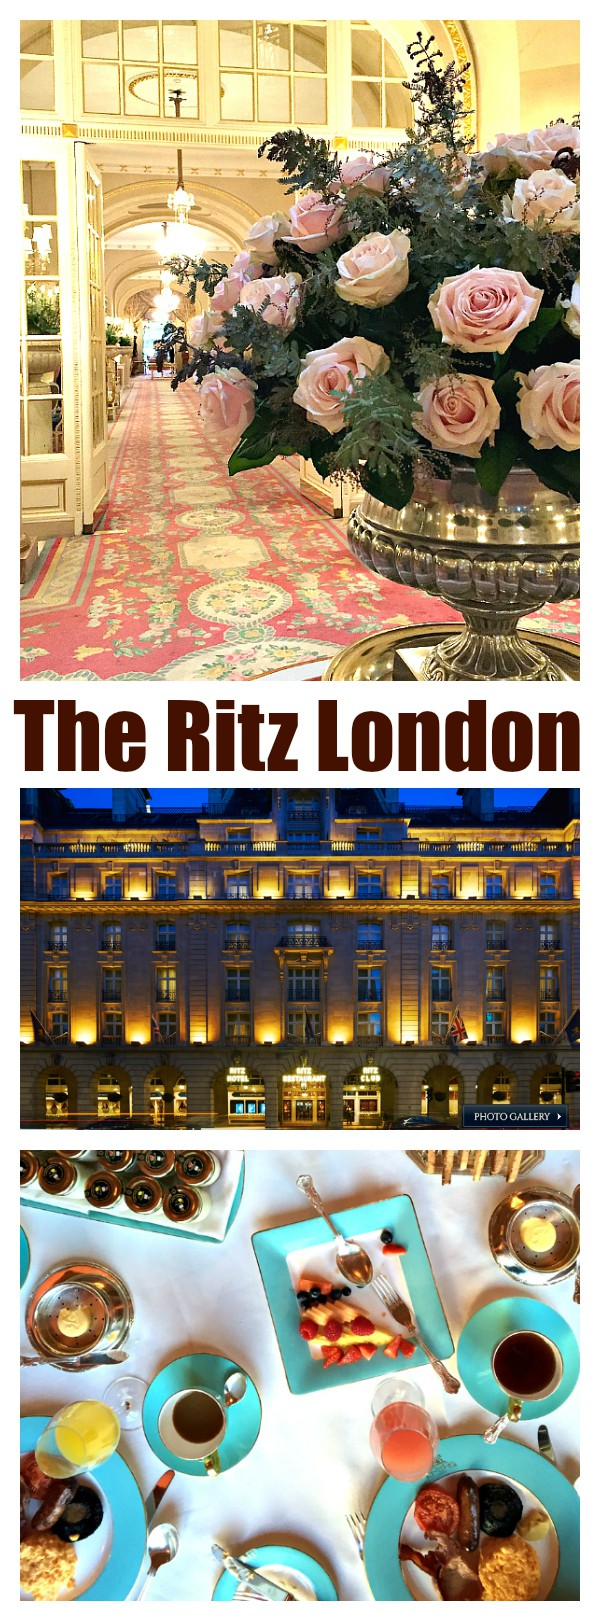 This is a review is of one of London's grandest hotels, world-famous The Ritz London hotel.